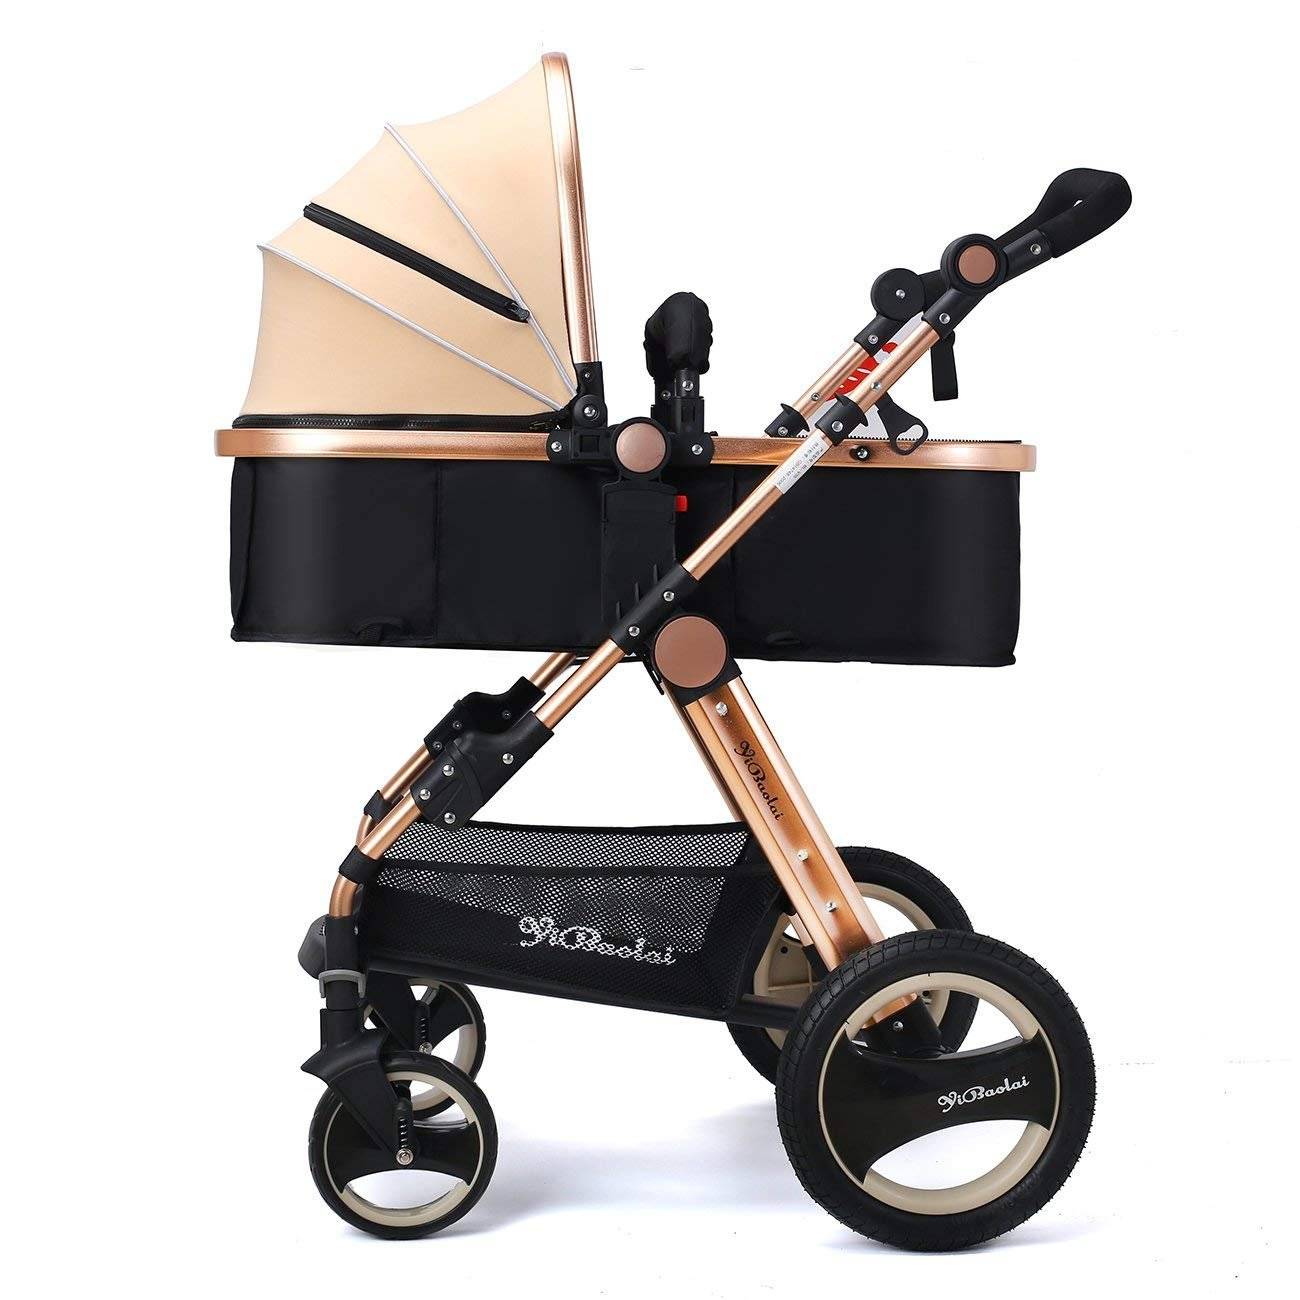 MAOSF Pushchairs High Landscape prams and pushchairs from Birth to 3 Years Old- Strollers for Newborn and Toddler Two Way Folding Aluminum Alloy Children's Trolley